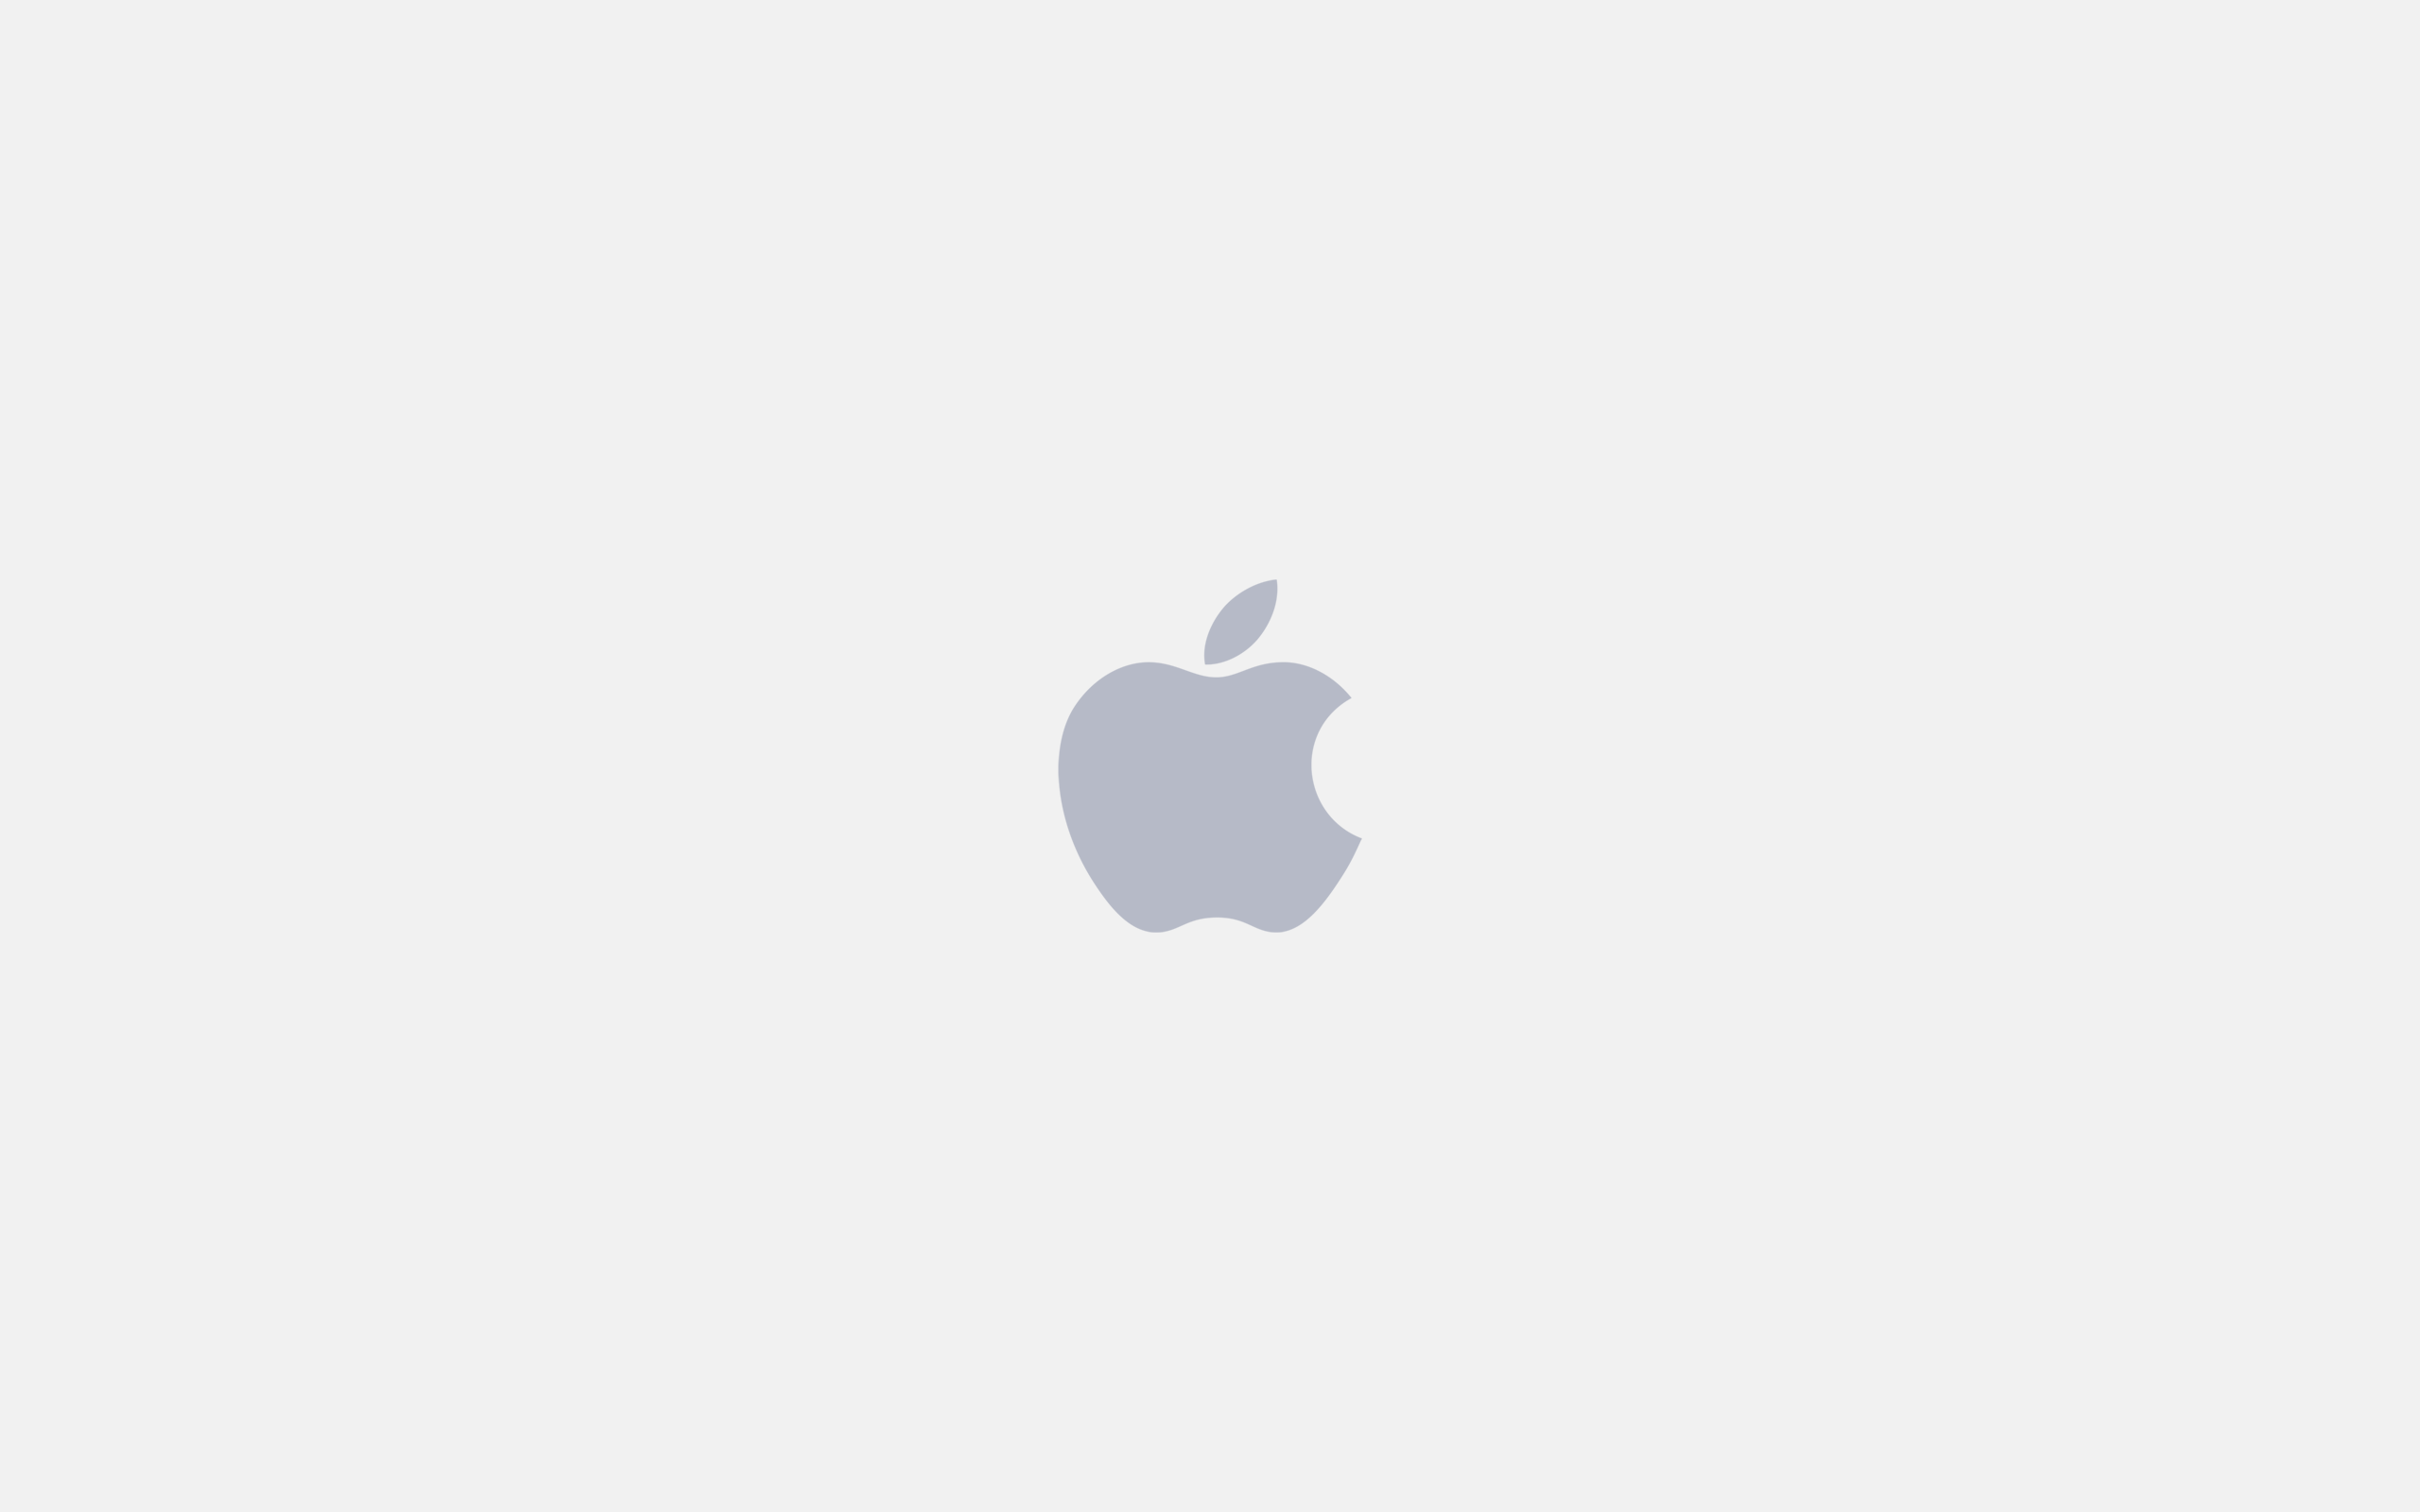 apple logo wallpapers hd a9 - hd desktop wallpapers | 4k hd